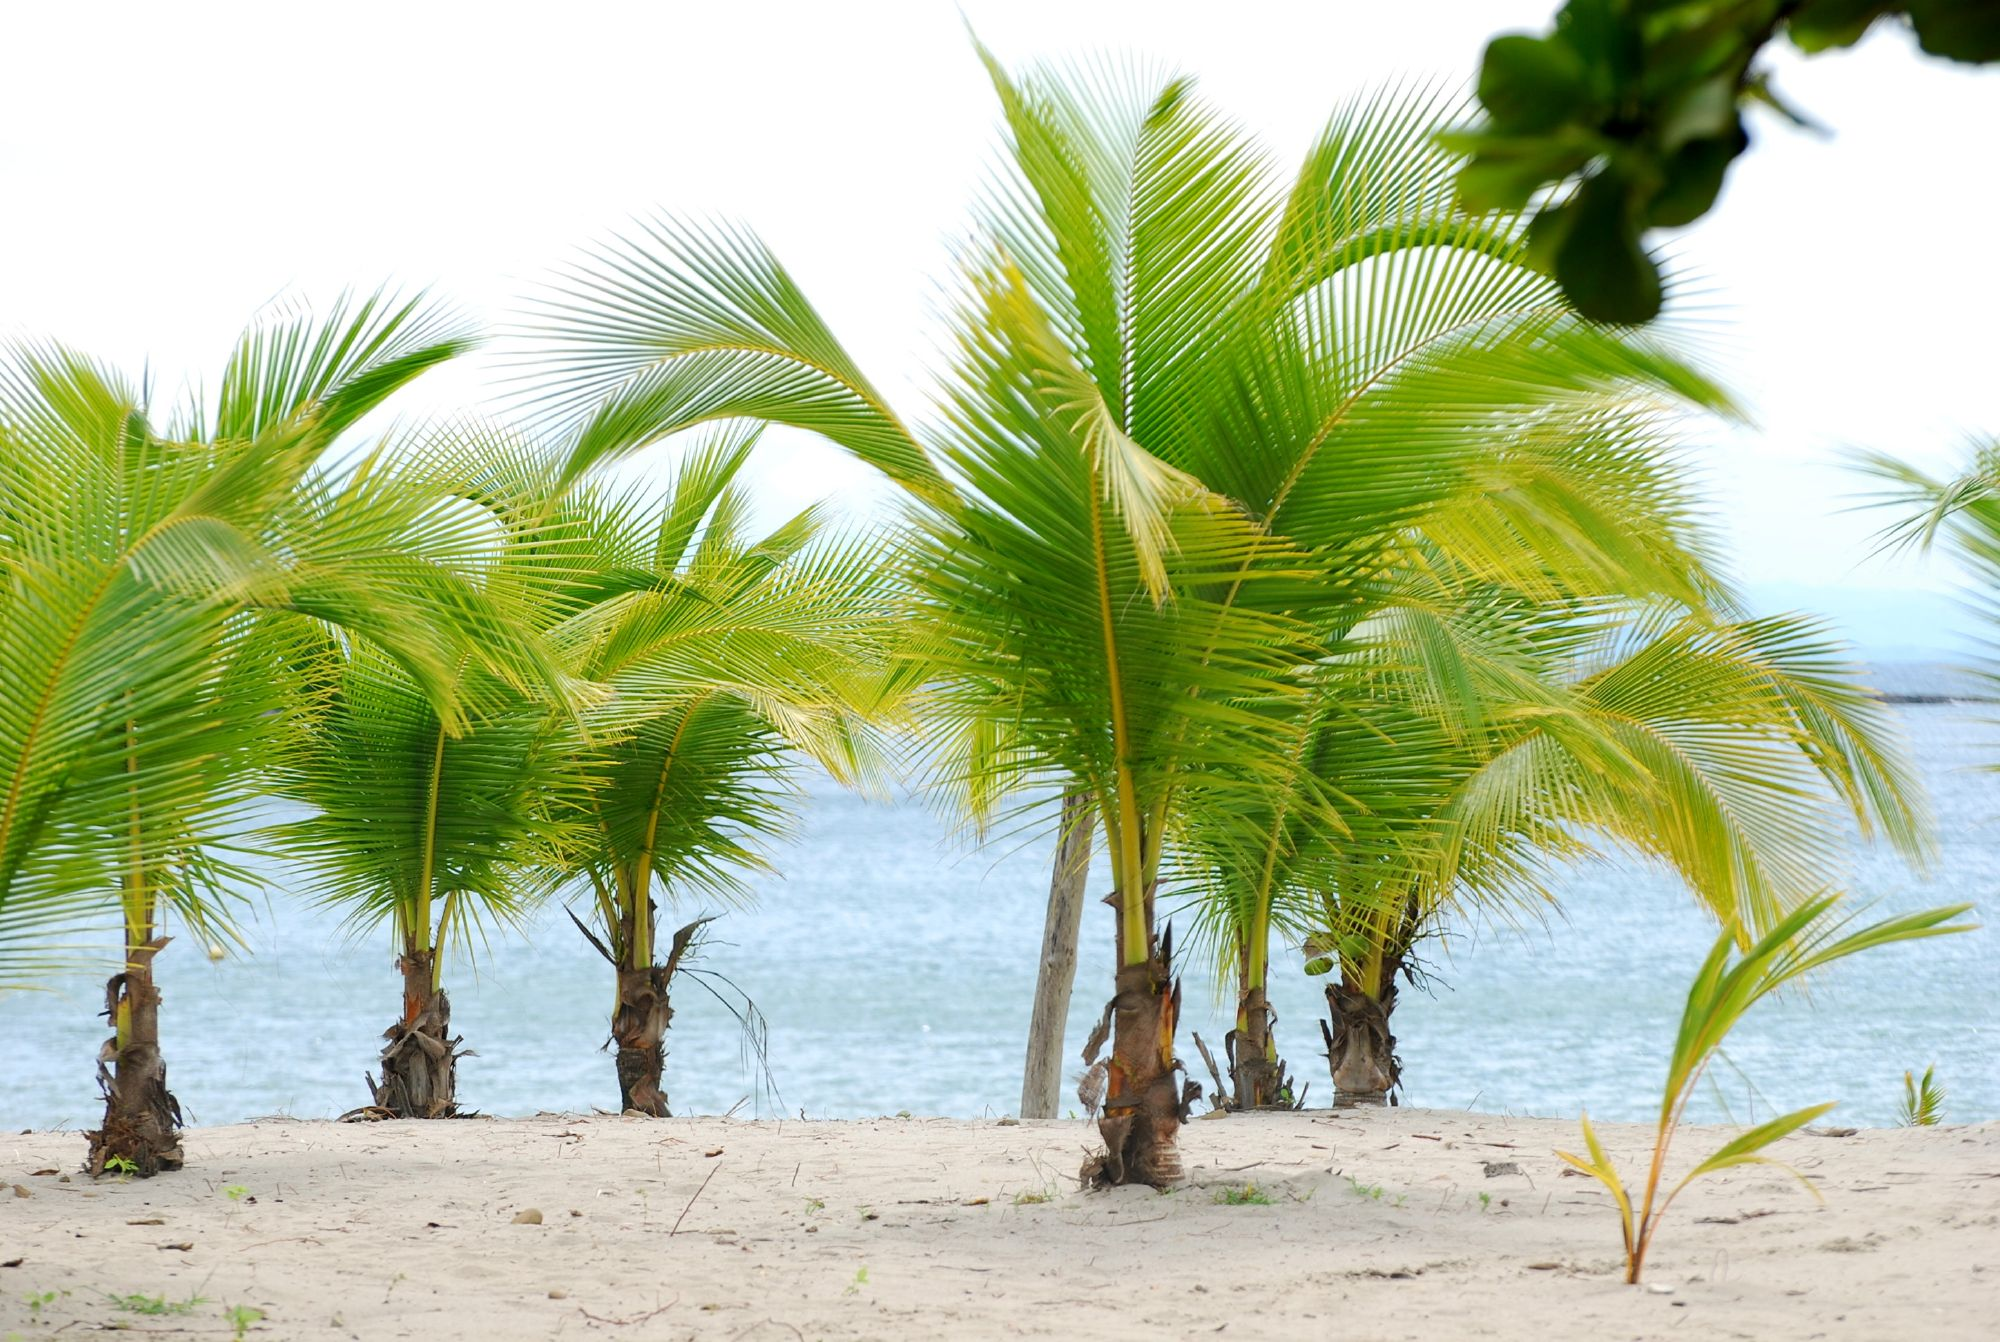 Small Palm Trees on a Beach